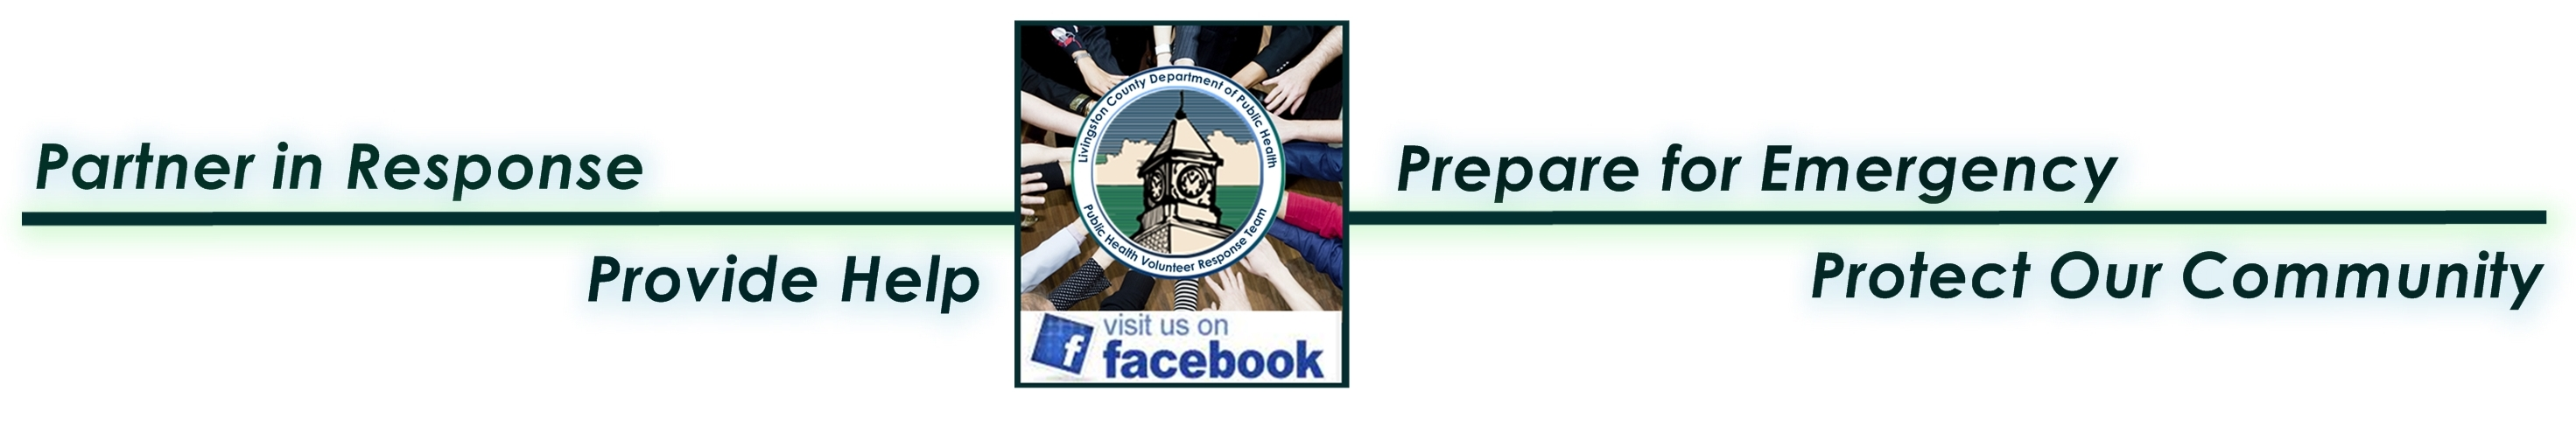 Ready in Livingston County Facebook banner.